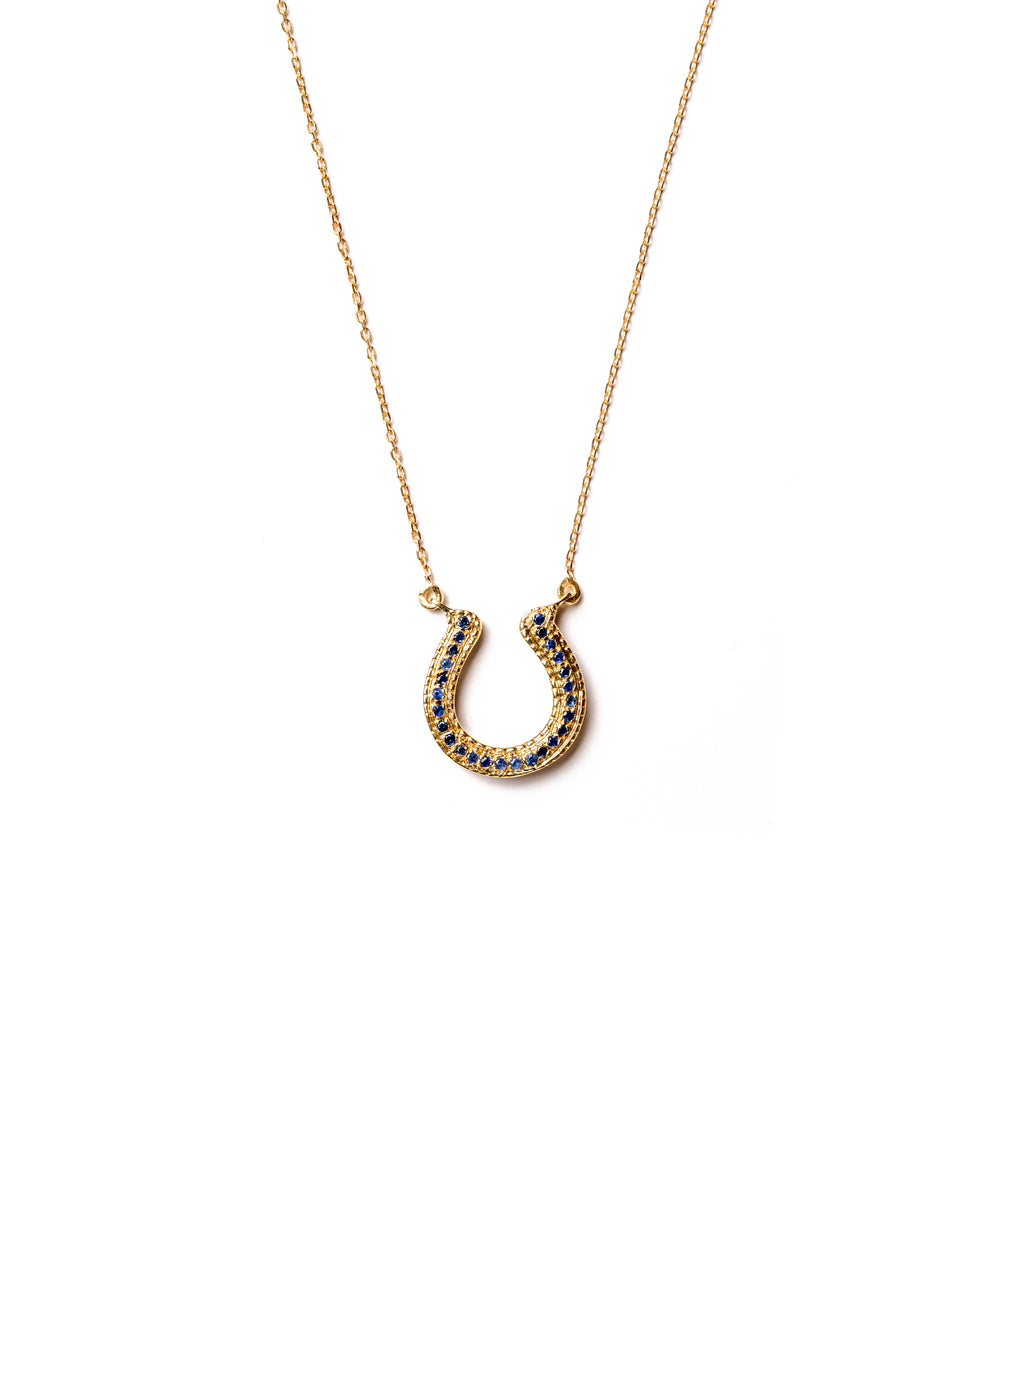 Horseshoe Necklace with Blue Sapphires